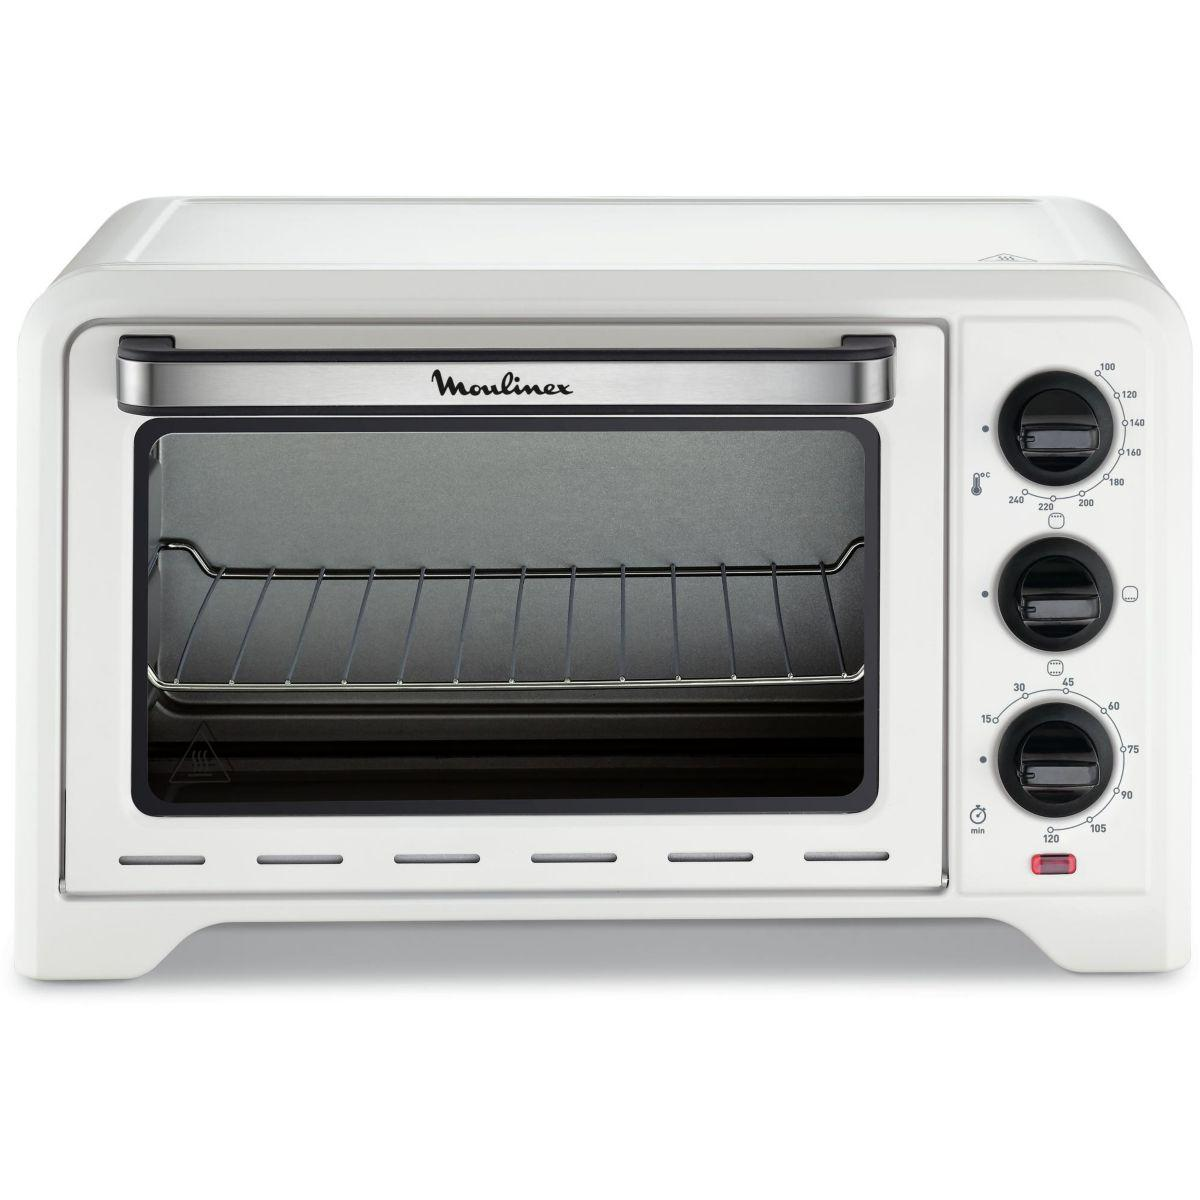 Mini four moulinex yy2960fb - 20% de remise immédiate avec le code : cool20 (photo)